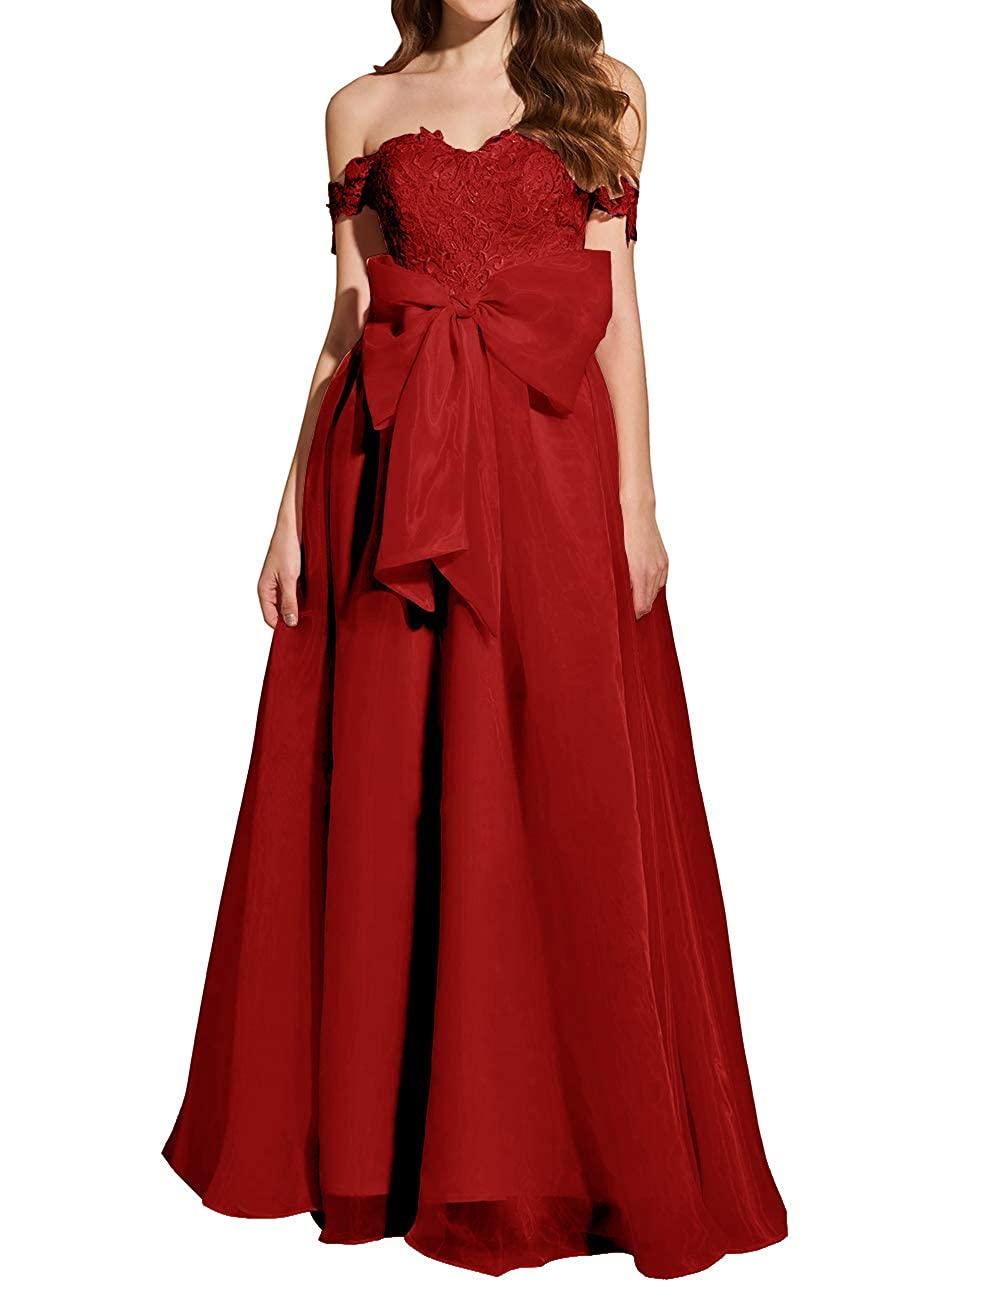 Burgundy Uther Formal Prom Dresses Off The Shoulder Appliques Long Evening Party Gowns Organza